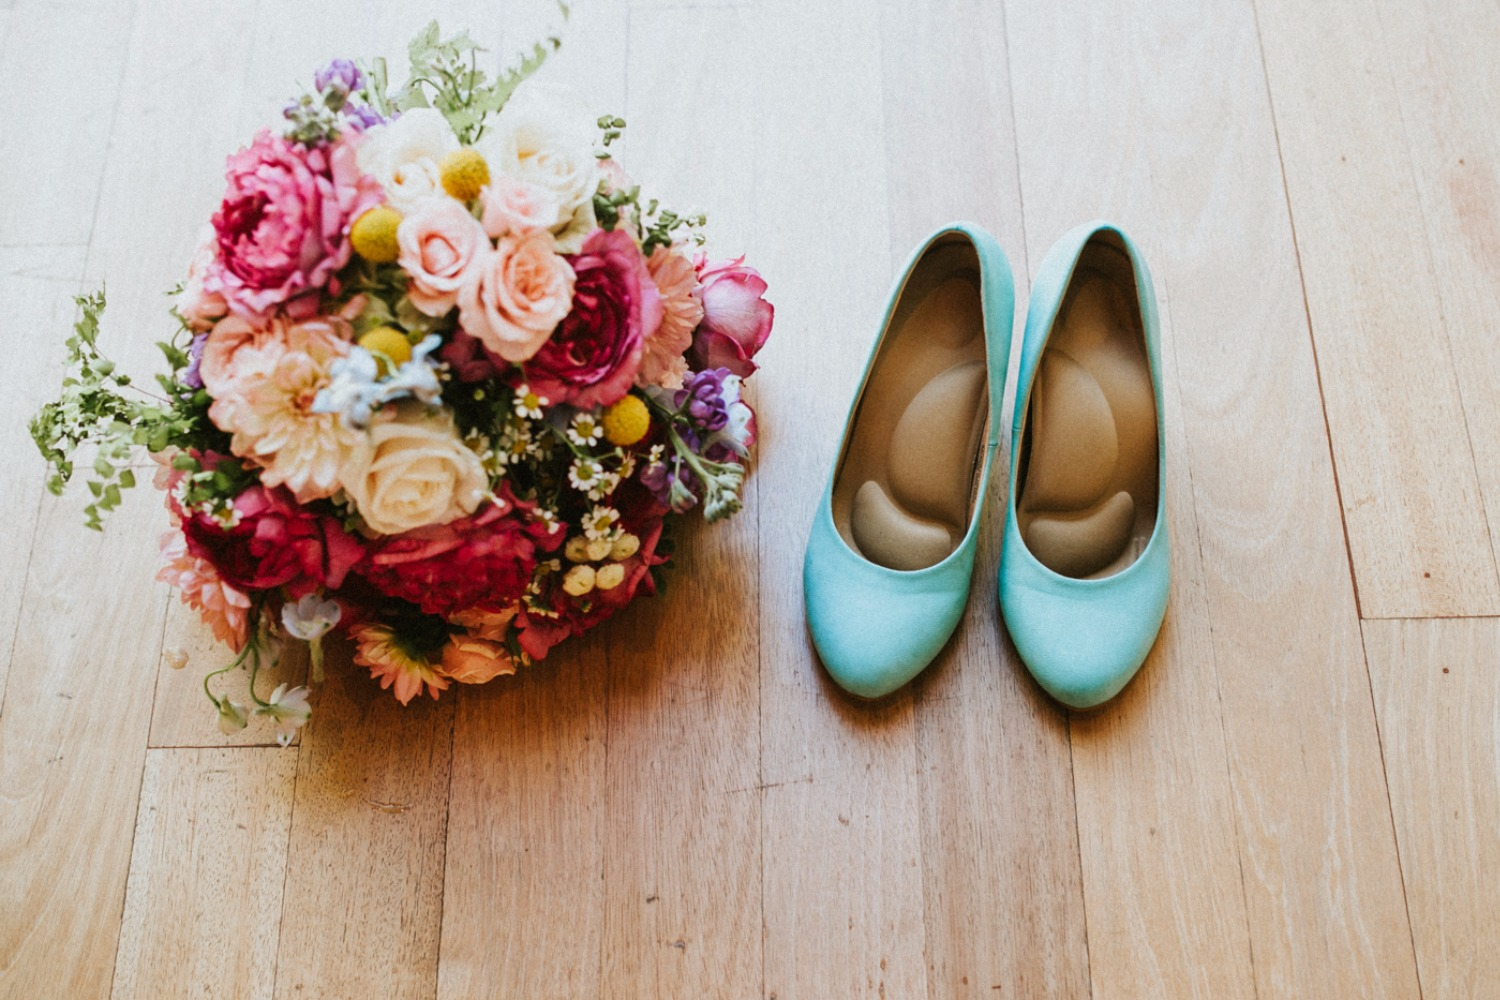 Teal wedding shoes and bouquet